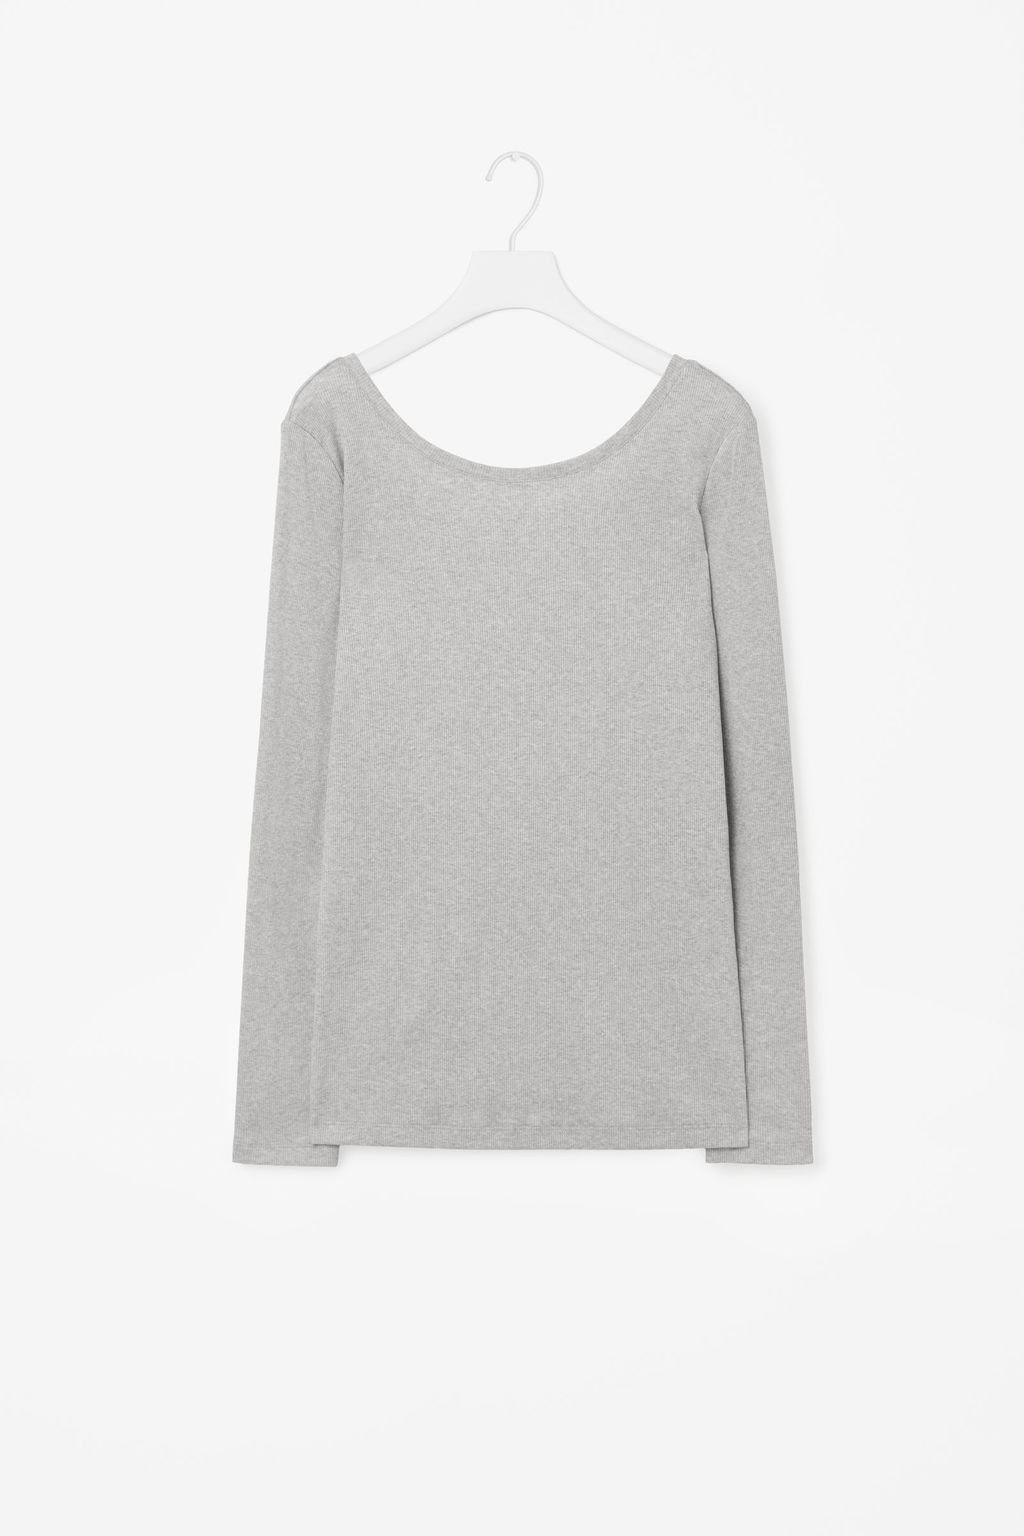 Low Back Ribbed Jersey Top - neckline: round neck; pattern: plain; style: t-shirt; predominant colour: mid grey; occasions: casual; length: standard; fibres: cotton - stretch; fit: straight cut; sleeve length: long sleeve; sleeve style: standard; pattern type: fabric; texture group: jersey - stretchy/drapey; wardrobe: basic; season: a/w 2016